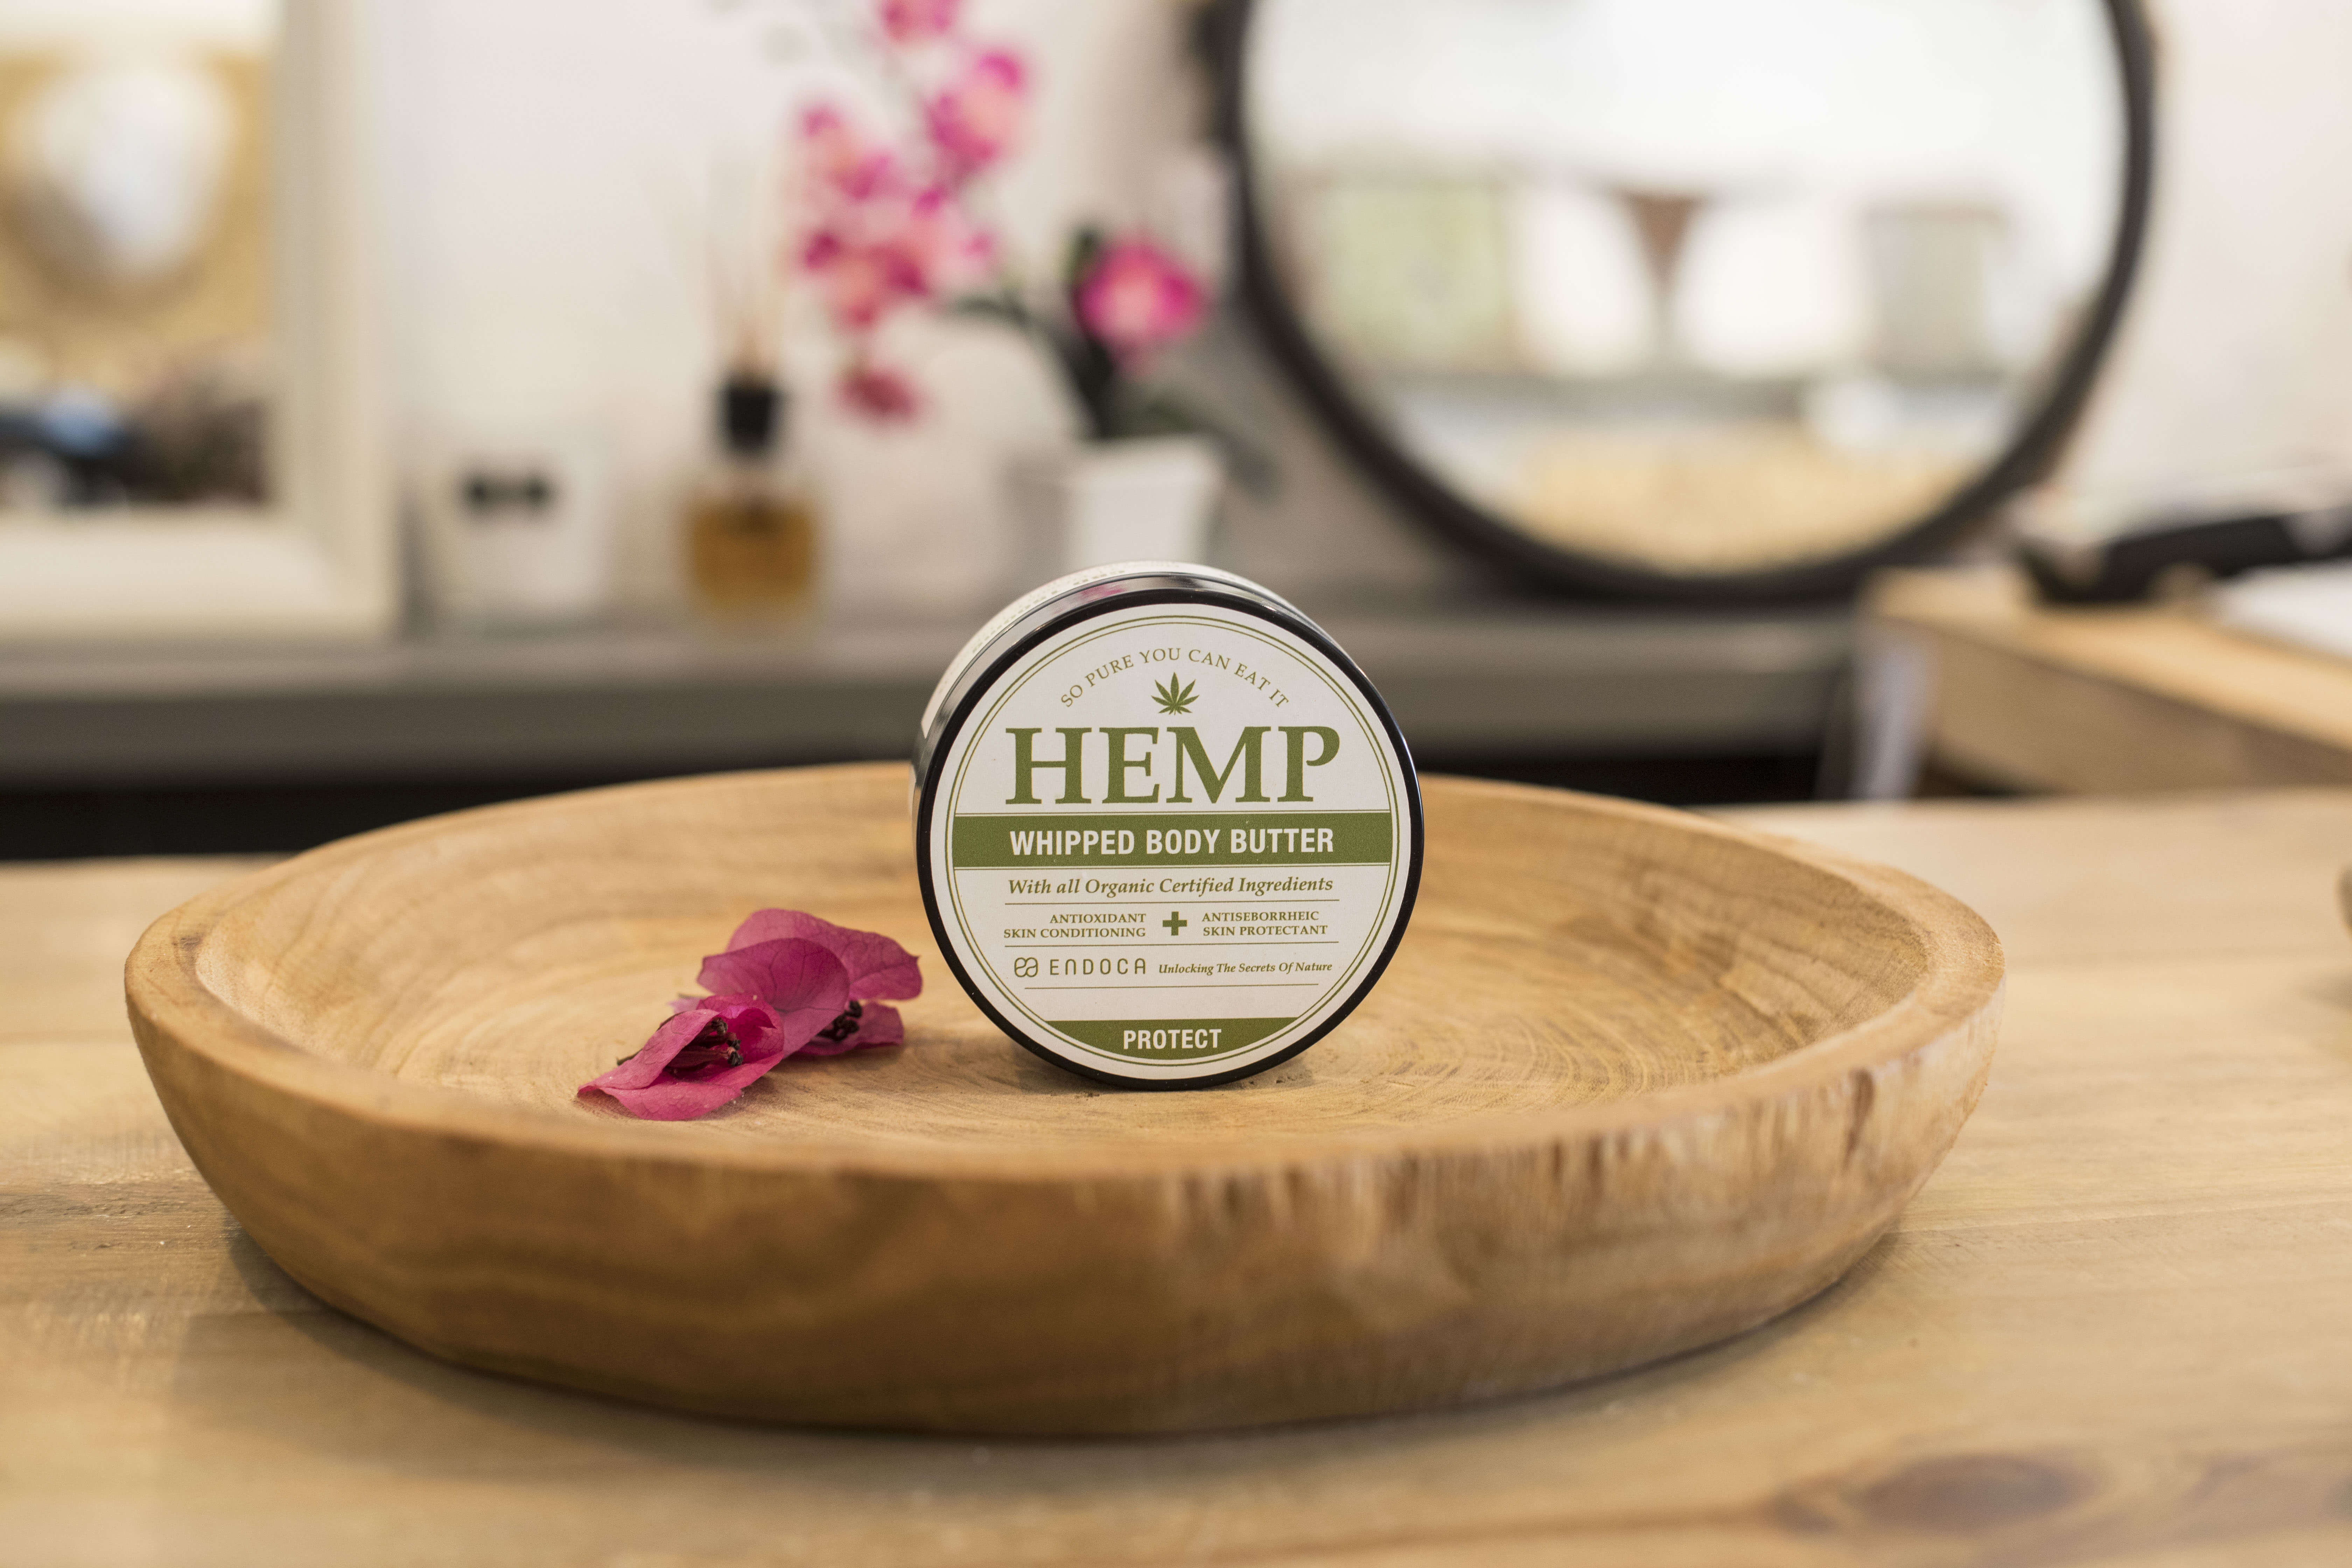 CBD body butter medical cannabis product sits on kitchen bench next to petal